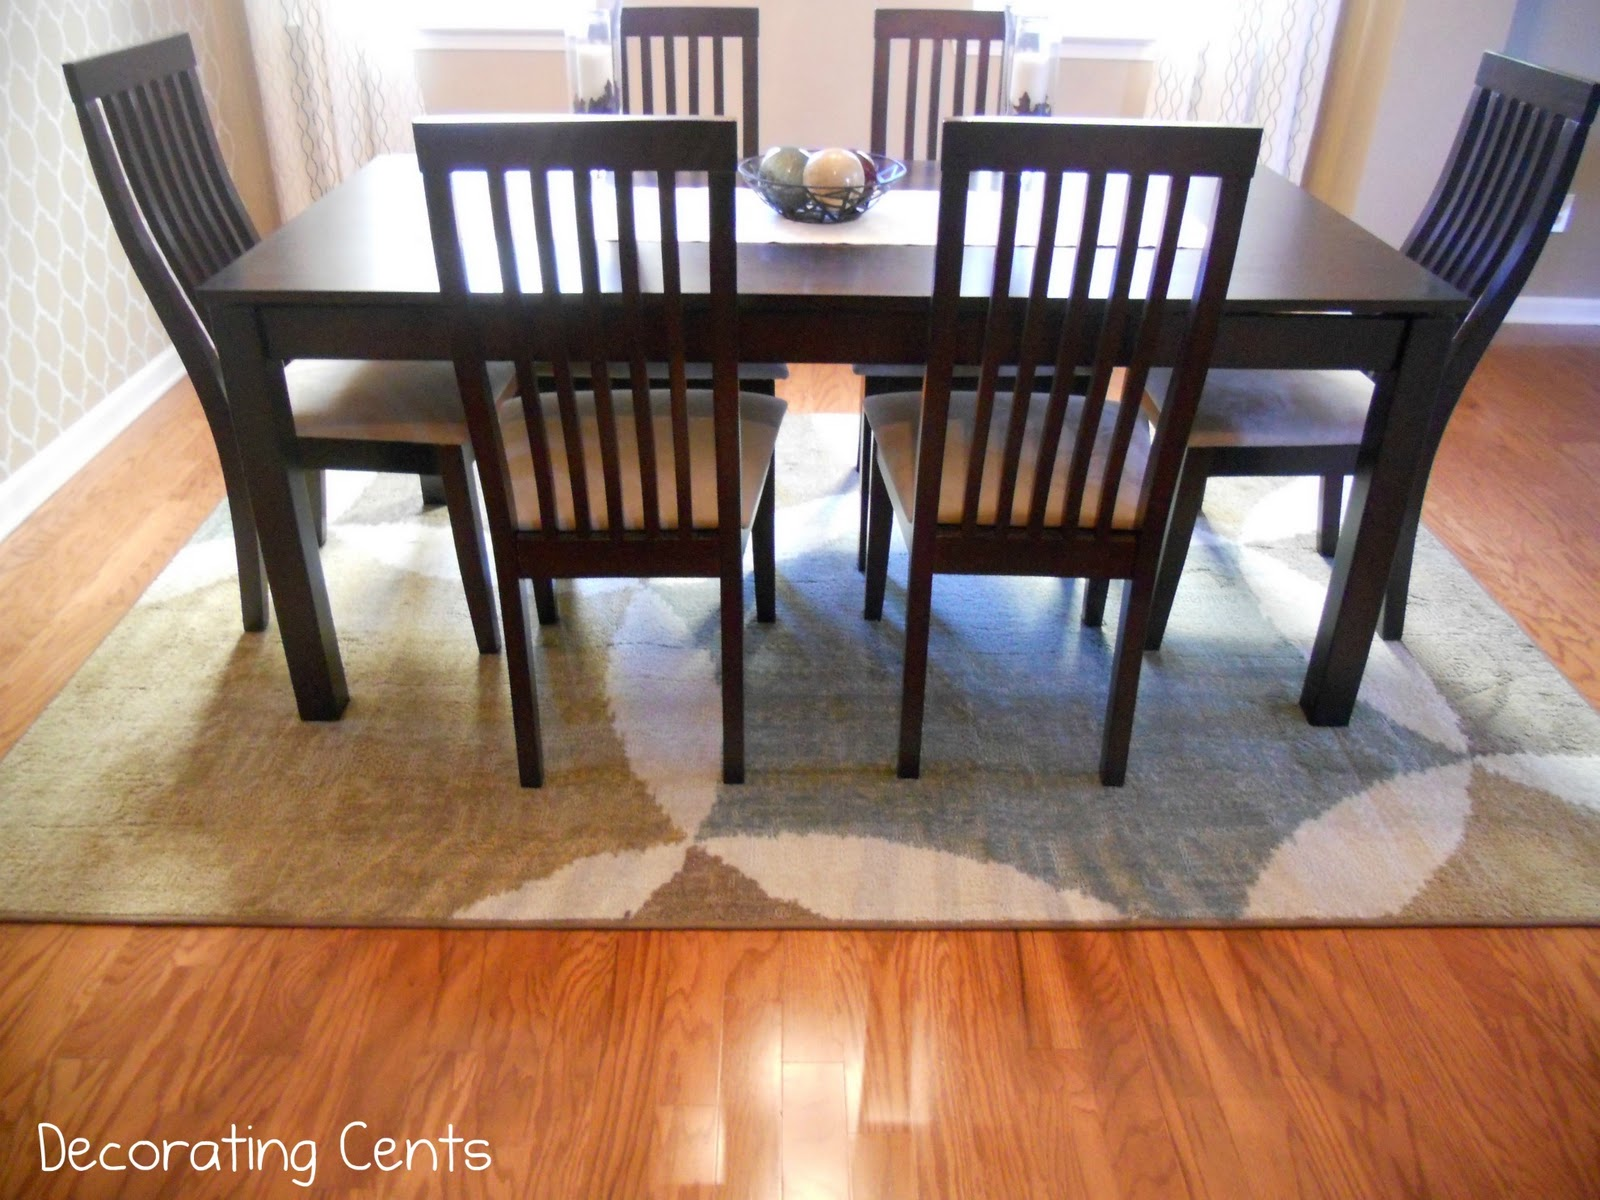 decorating cents dining room rug. Black Bedroom Furniture Sets. Home Design Ideas